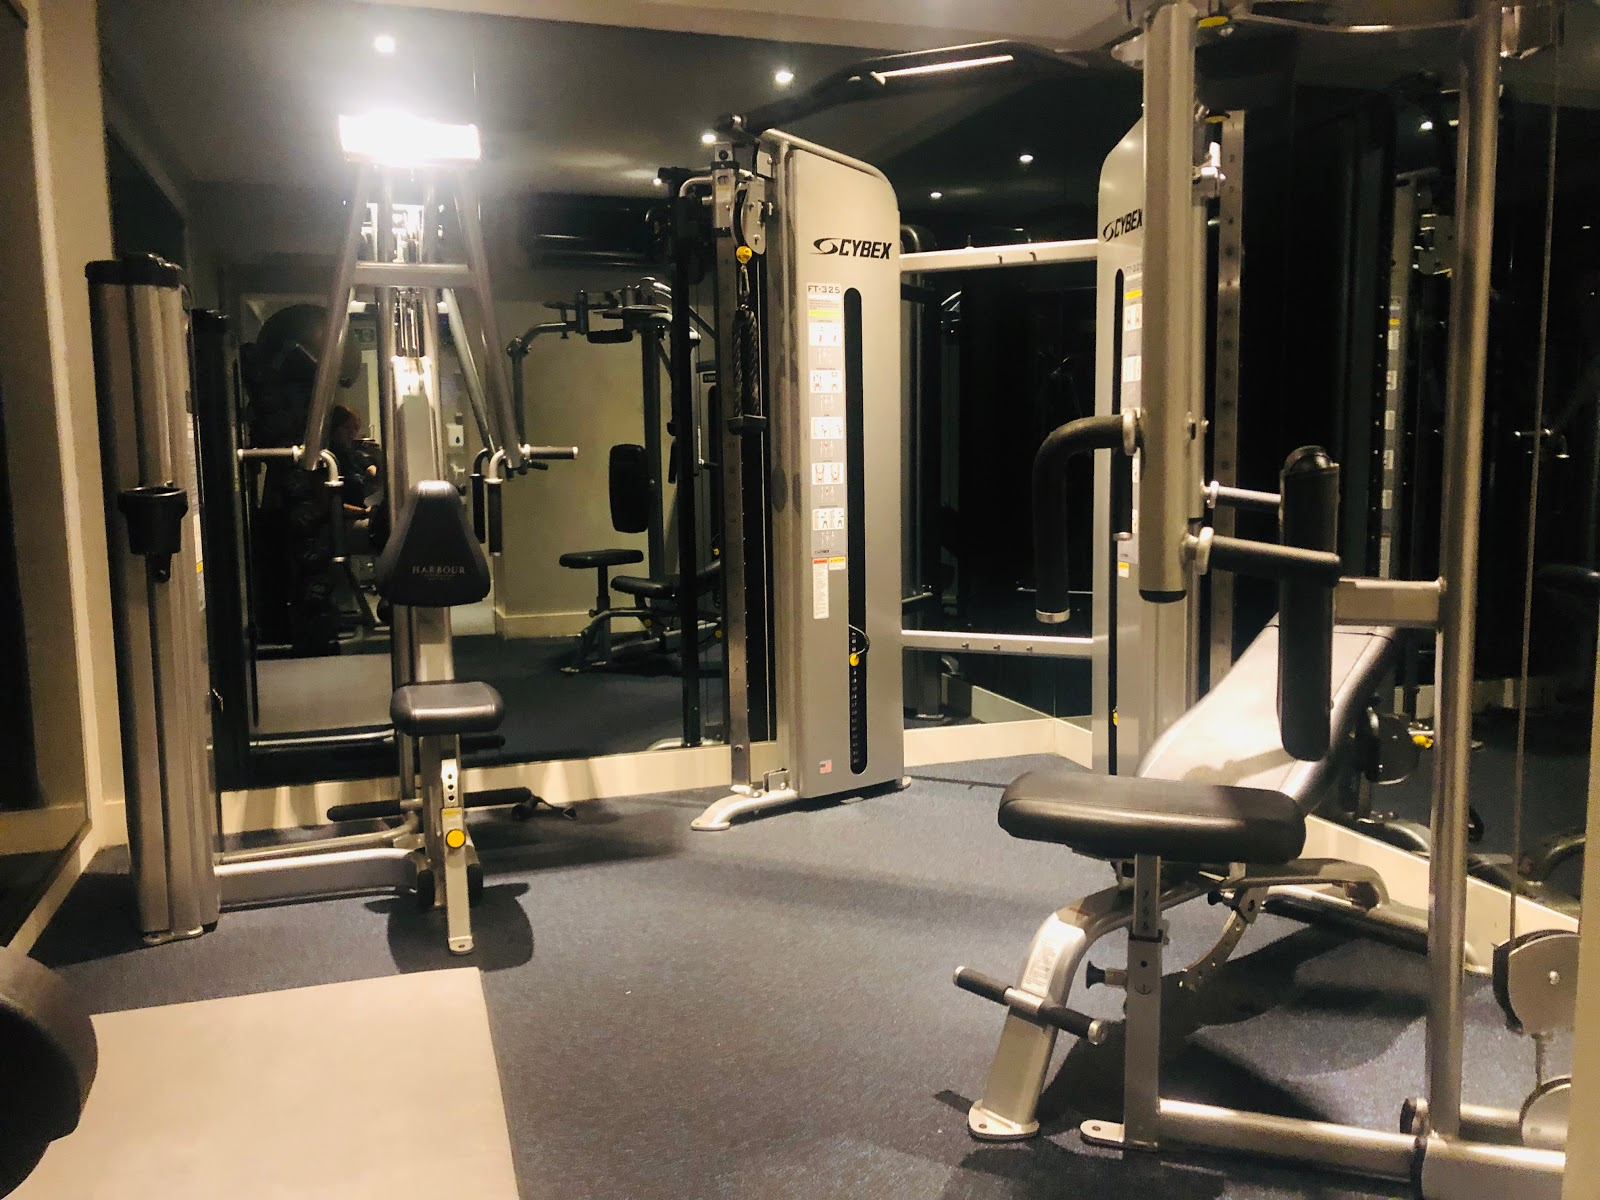 Brighton Harbour Hotel - Gym Facilities